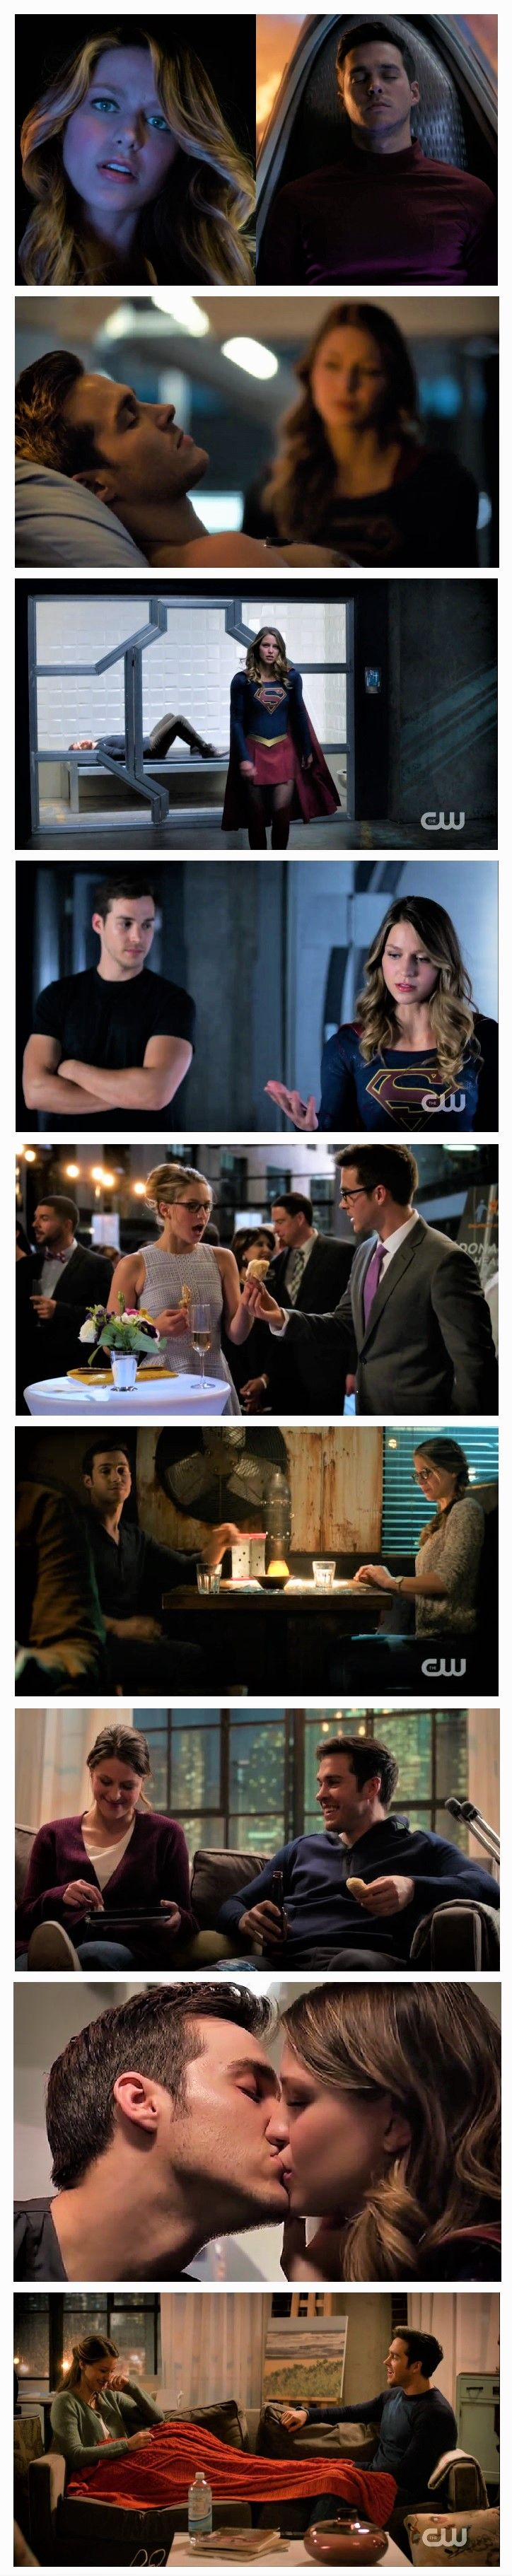 Super long photo edit of Kara and Mon-El from Season 2 (episodes 2x01--2x09). I SO didn't want/need another ship, but the chemistry reeled me in, darn it.  |TV Shows||CW||#Supergirl||#Supergirl edit||Kara Danvers||Mon-El||Kara x Mon-El||#Karamel edit||Cute couples||Melissa Benoist||Chris Wood||Collage|